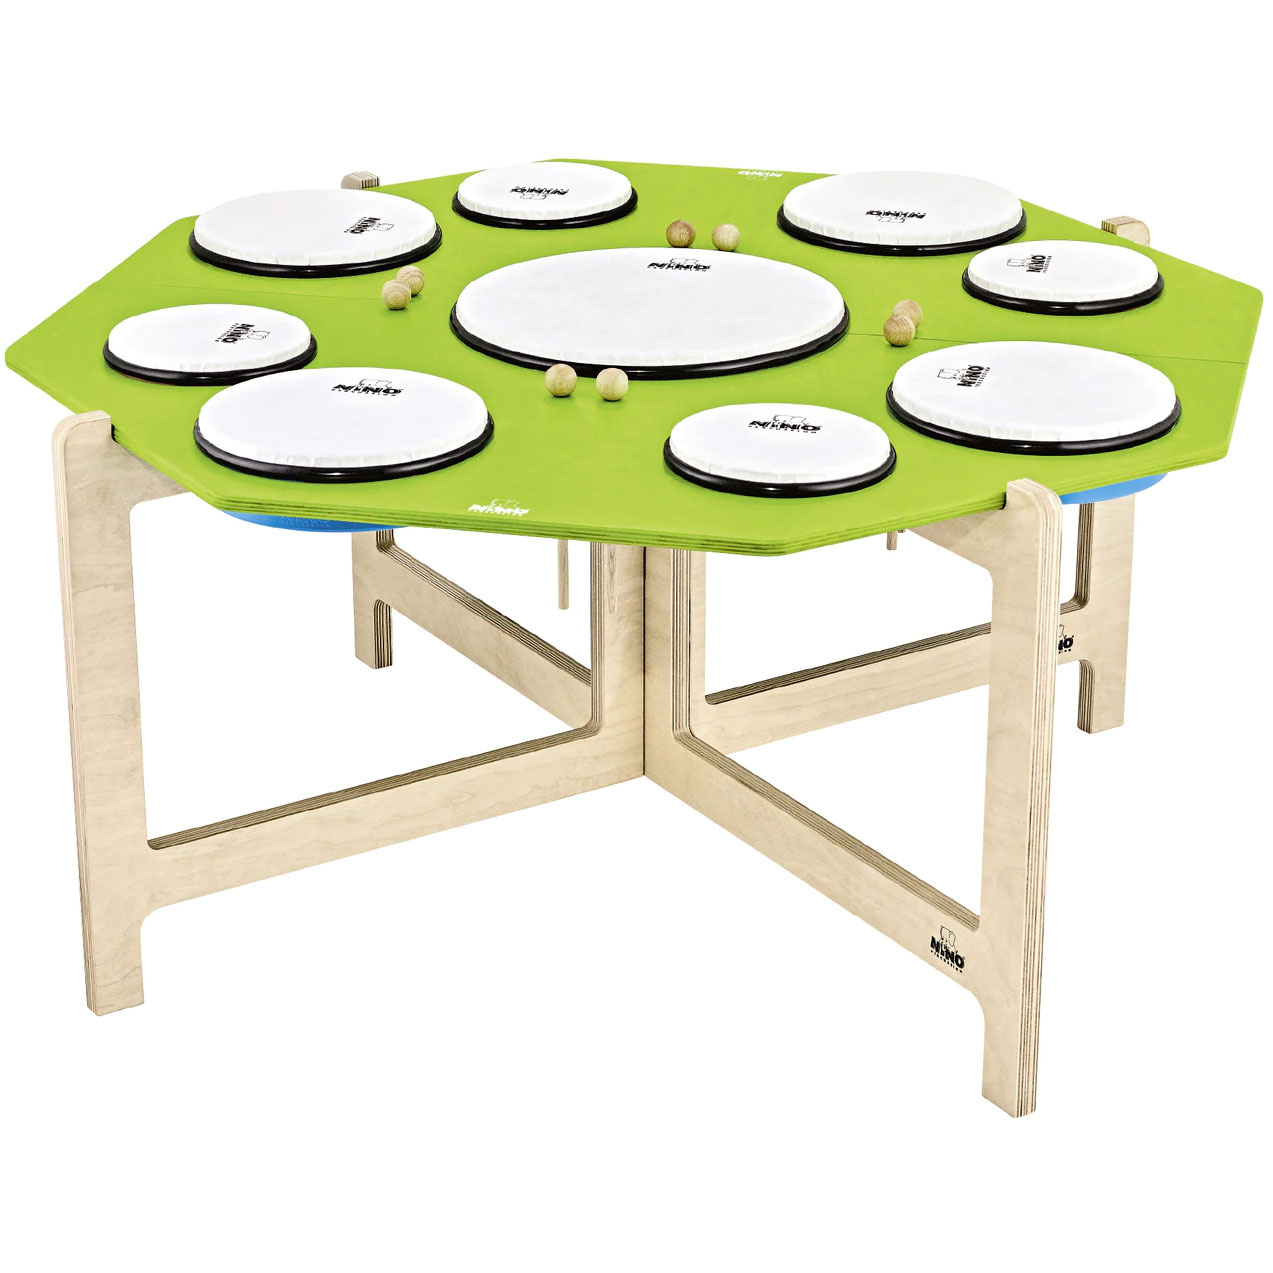 Meinl Nino Classroom Hand Drum Set with Stand